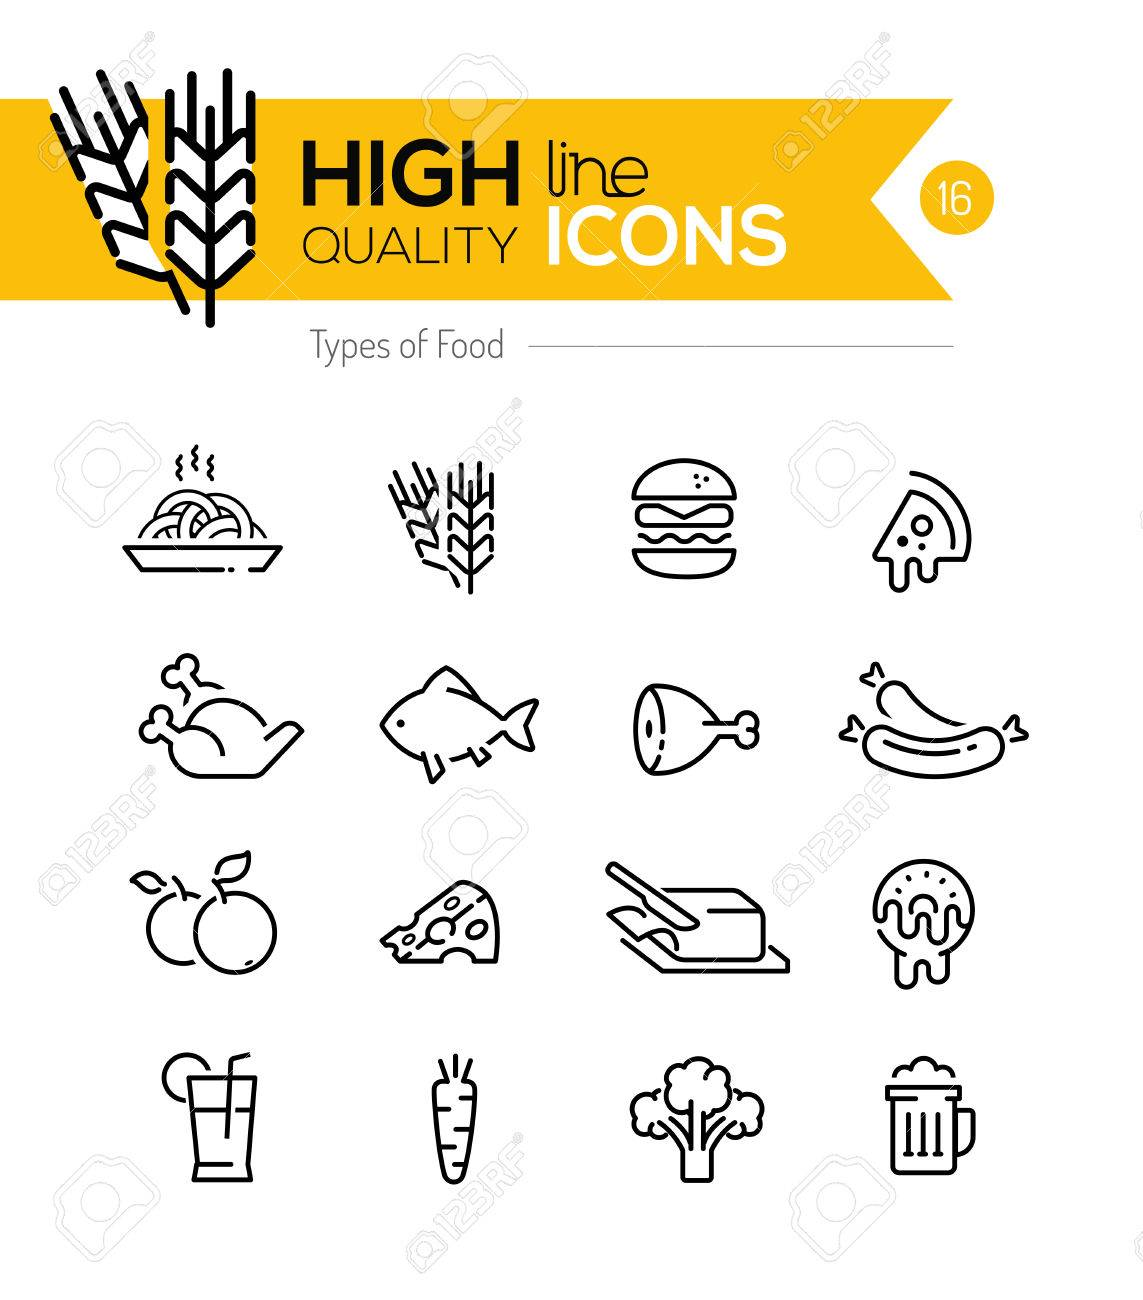 Types of Food line Icons including: meat, grain, dairy etc.. - 39090748